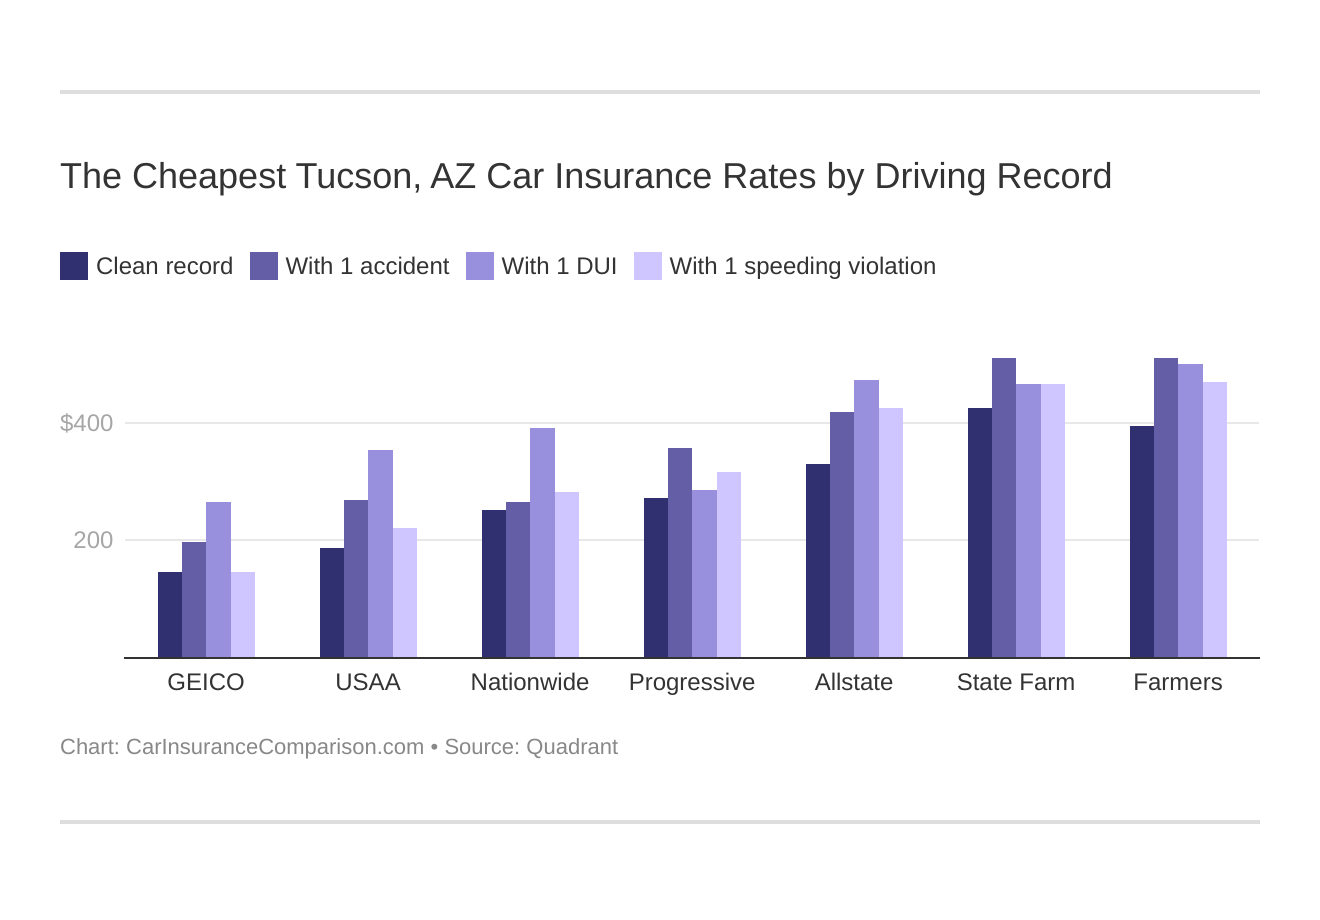 The Cheapest Tucson, AZ Car Insurance Rates by Driving Record